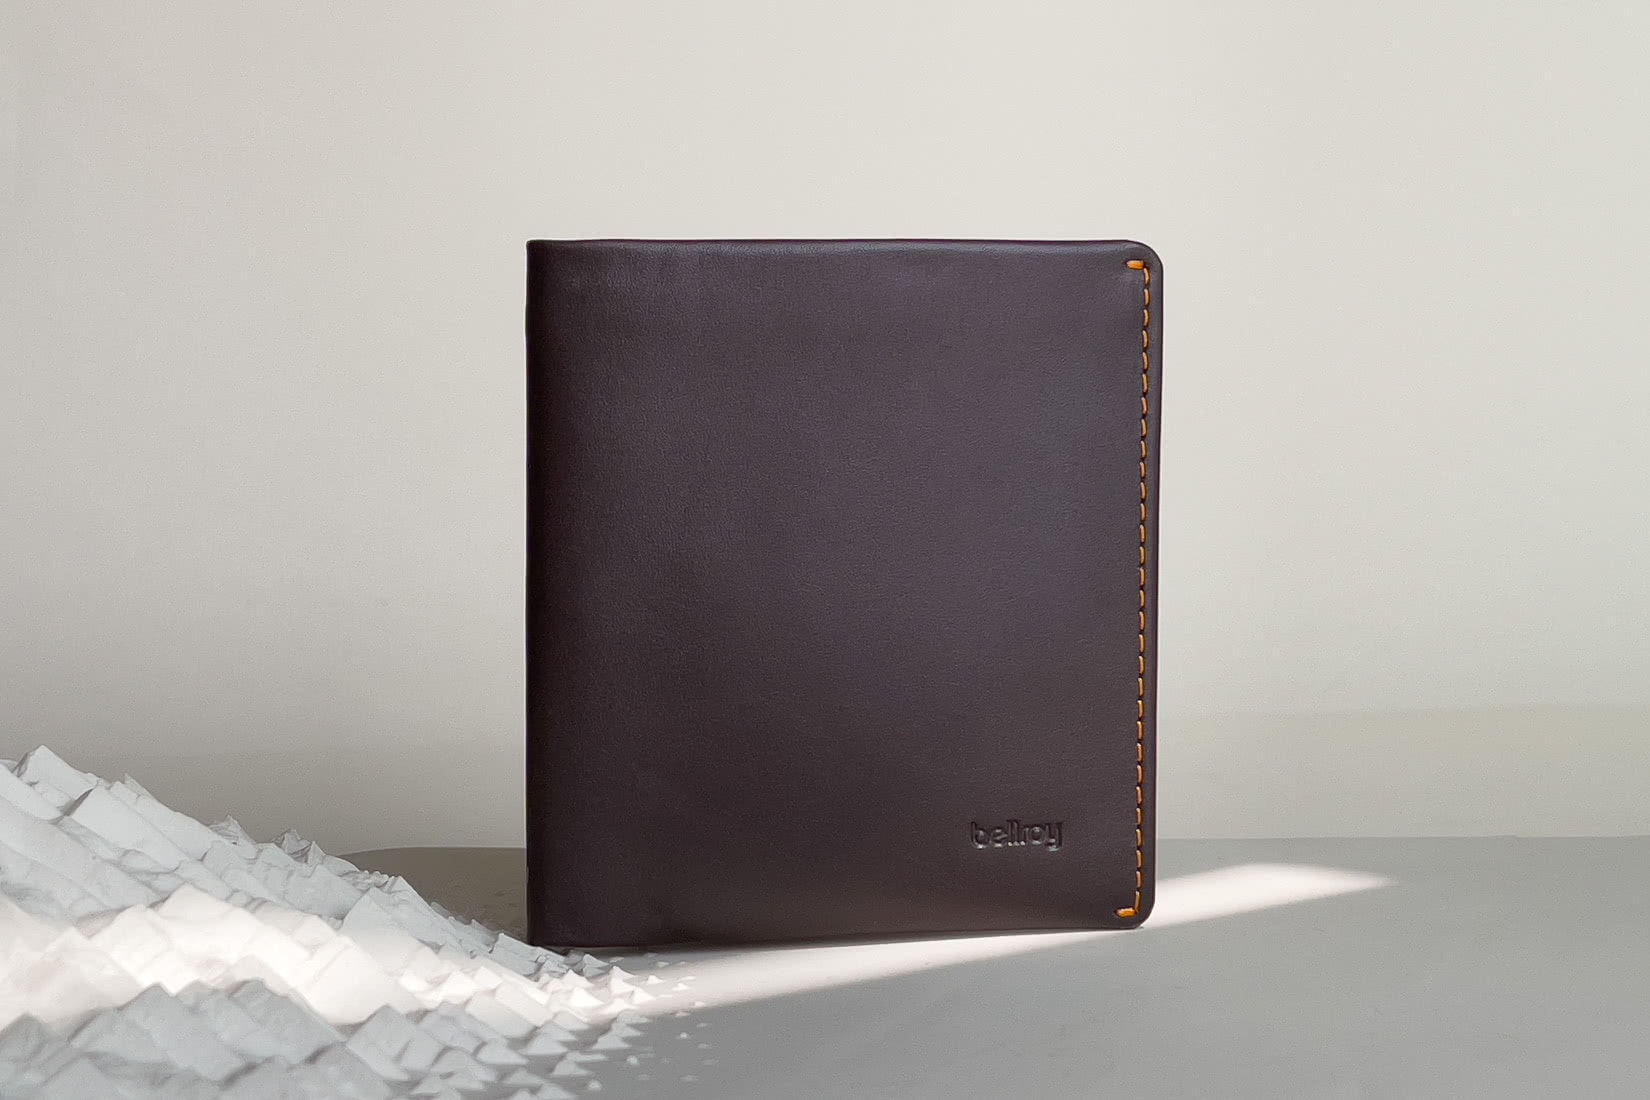 Bellroy note sleeve wallet review - Luxe Digital